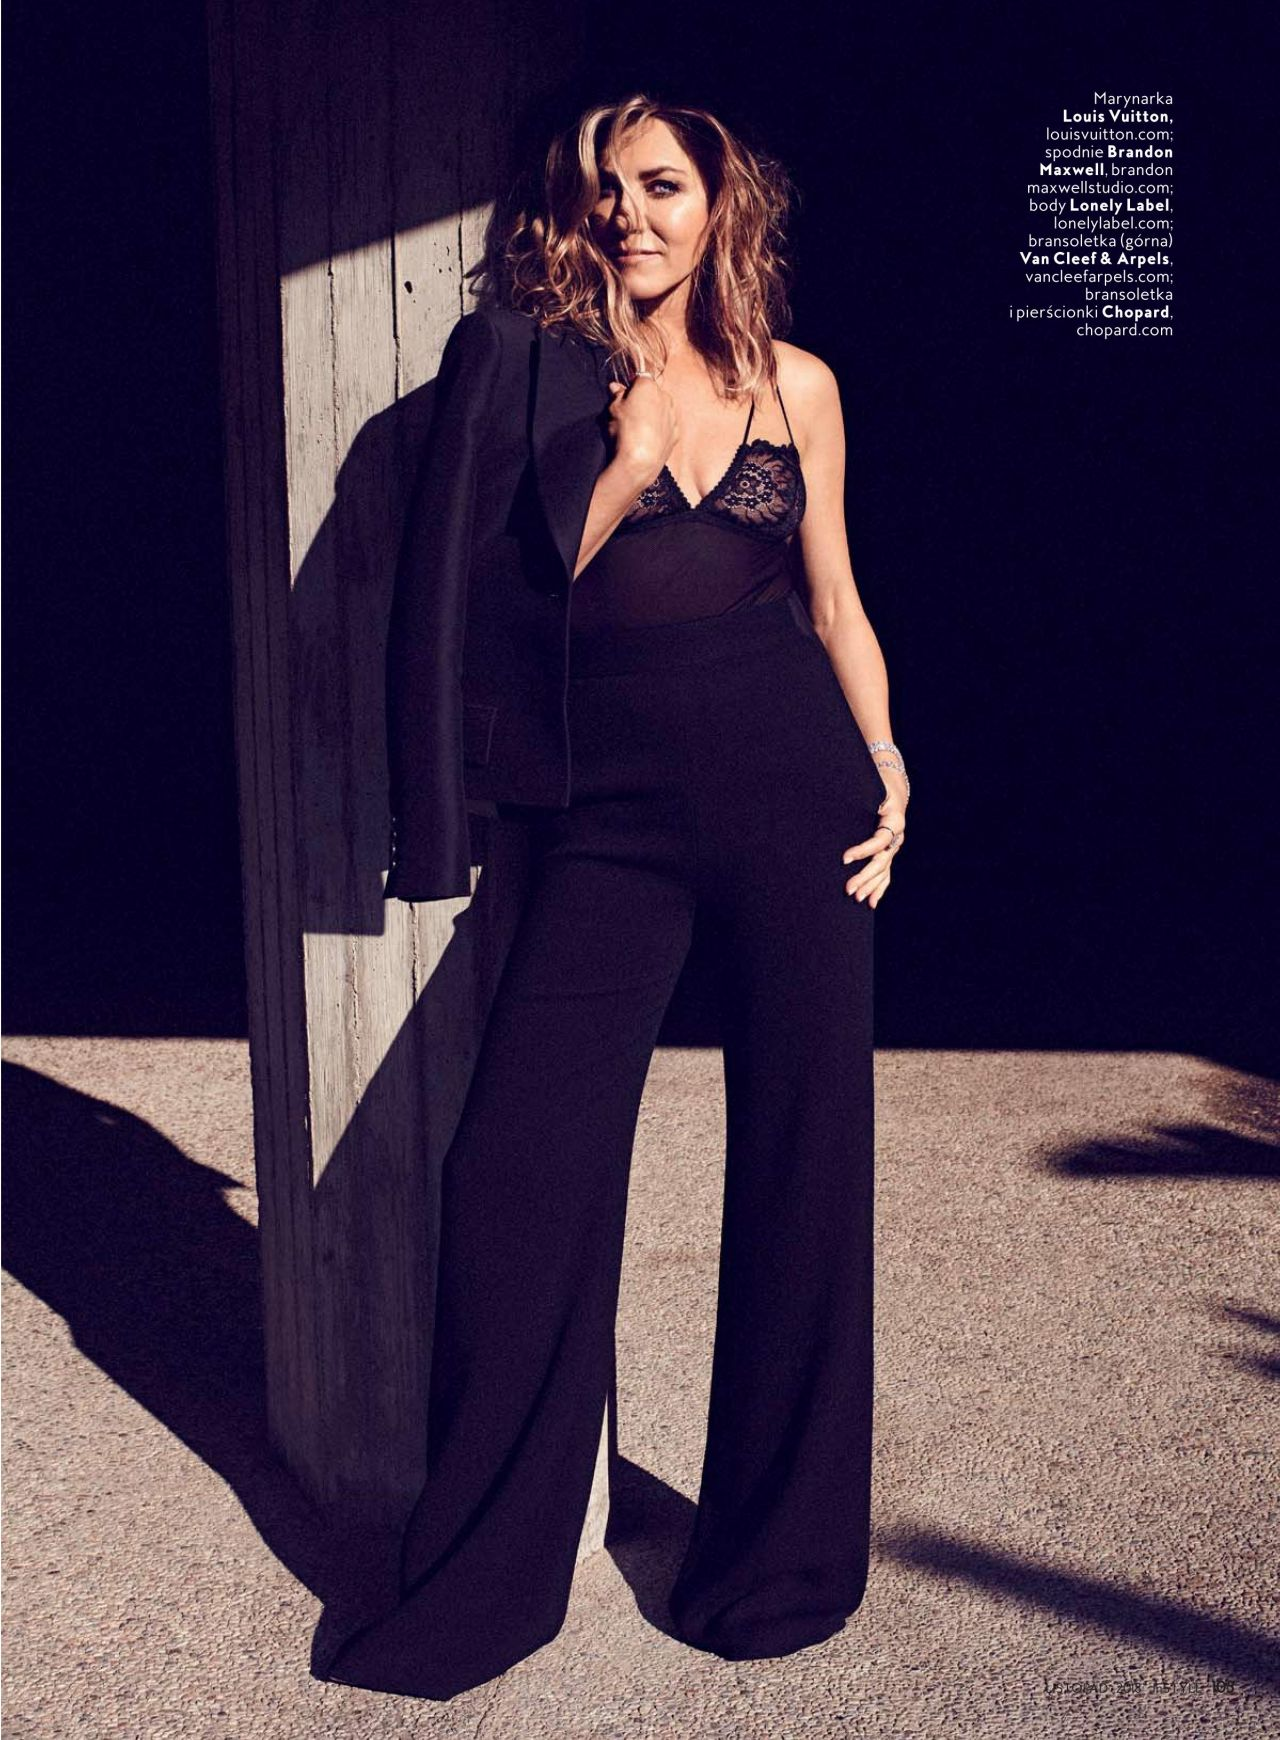 https://celebmafia.com/wp-content/uploads/2018/10/jennifer-aniston-instyle-poland-november-2018-issue-1.jpg